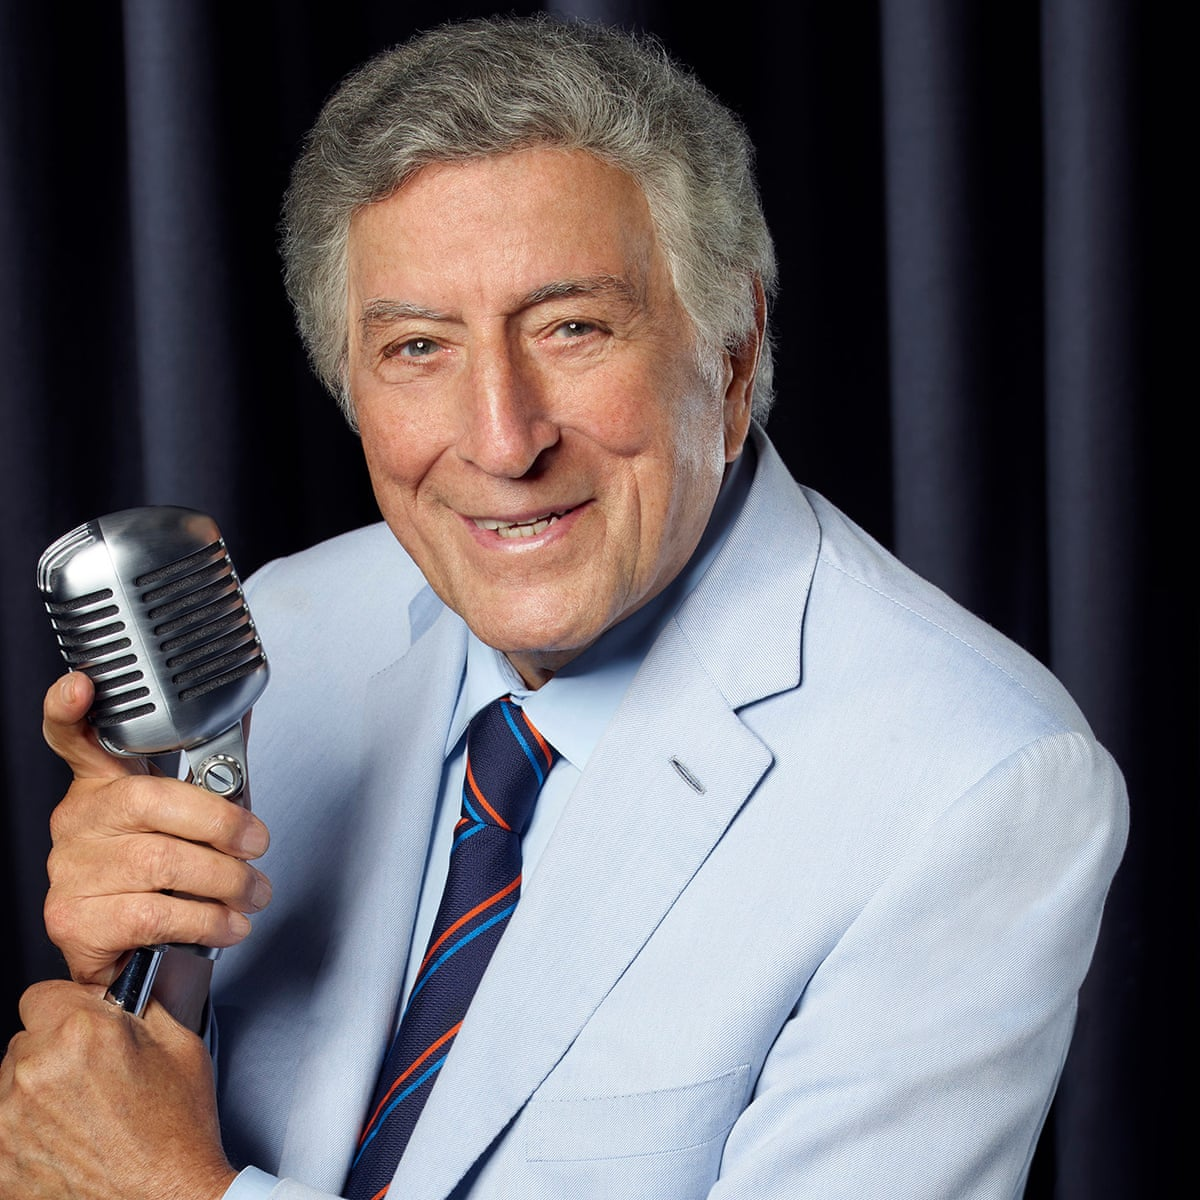 Tony Bennett: 'I can't say my wife and I didn't notice the 40-year age gap  when we met' | Family | The Guardian